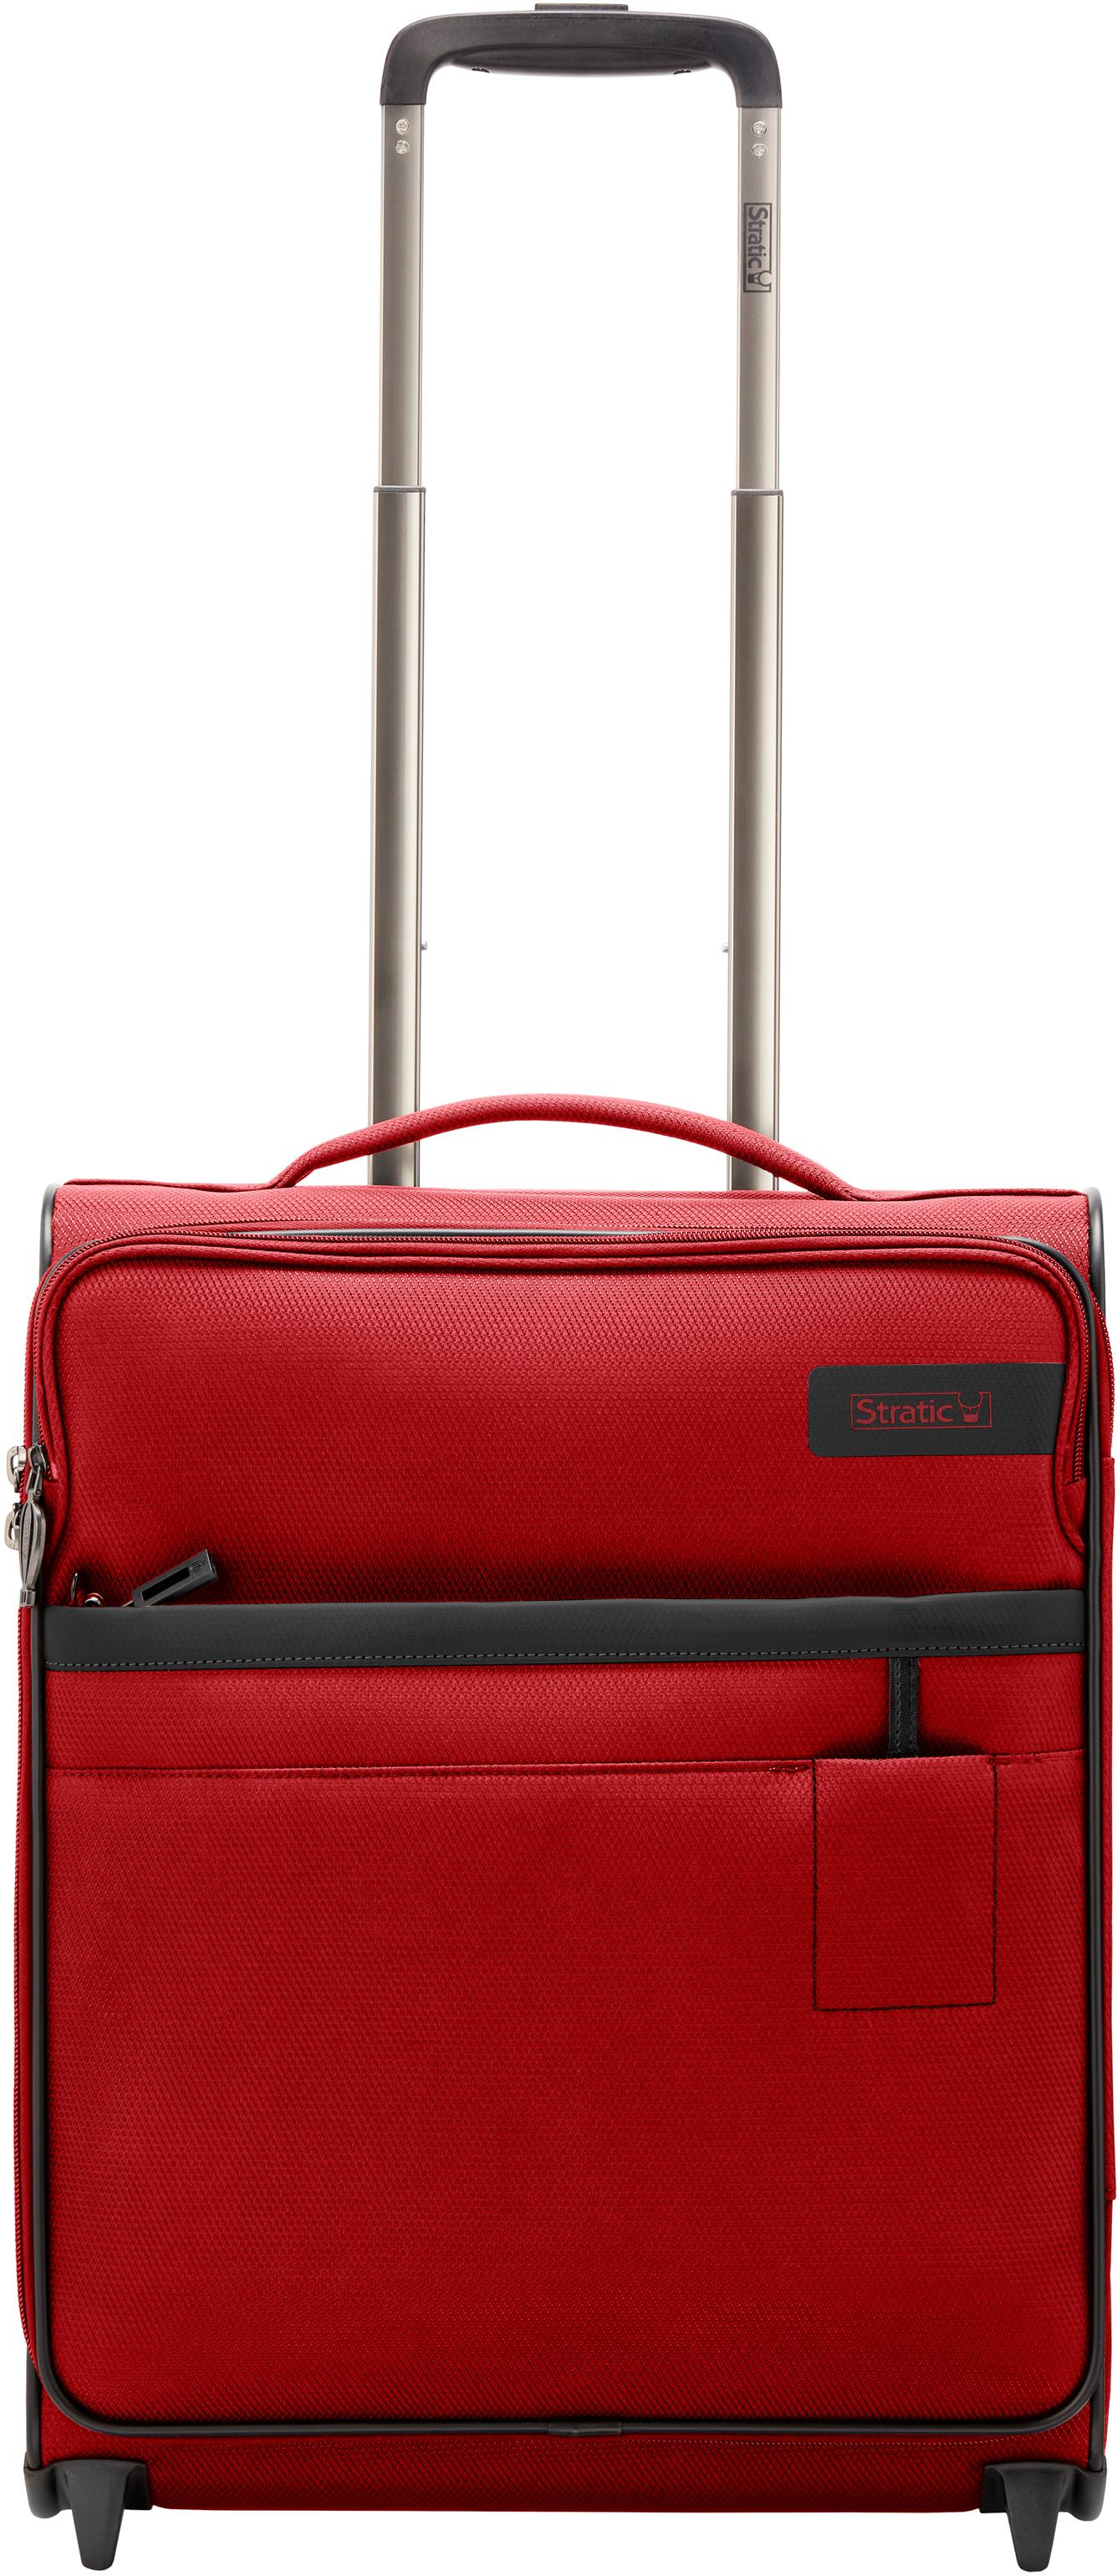 Stratic Weichgepäck-Trolley Stratic Light S, red, 2 Rollen | Taschen > Koffer & Trolleys > Trolleys | Rot | Stratic